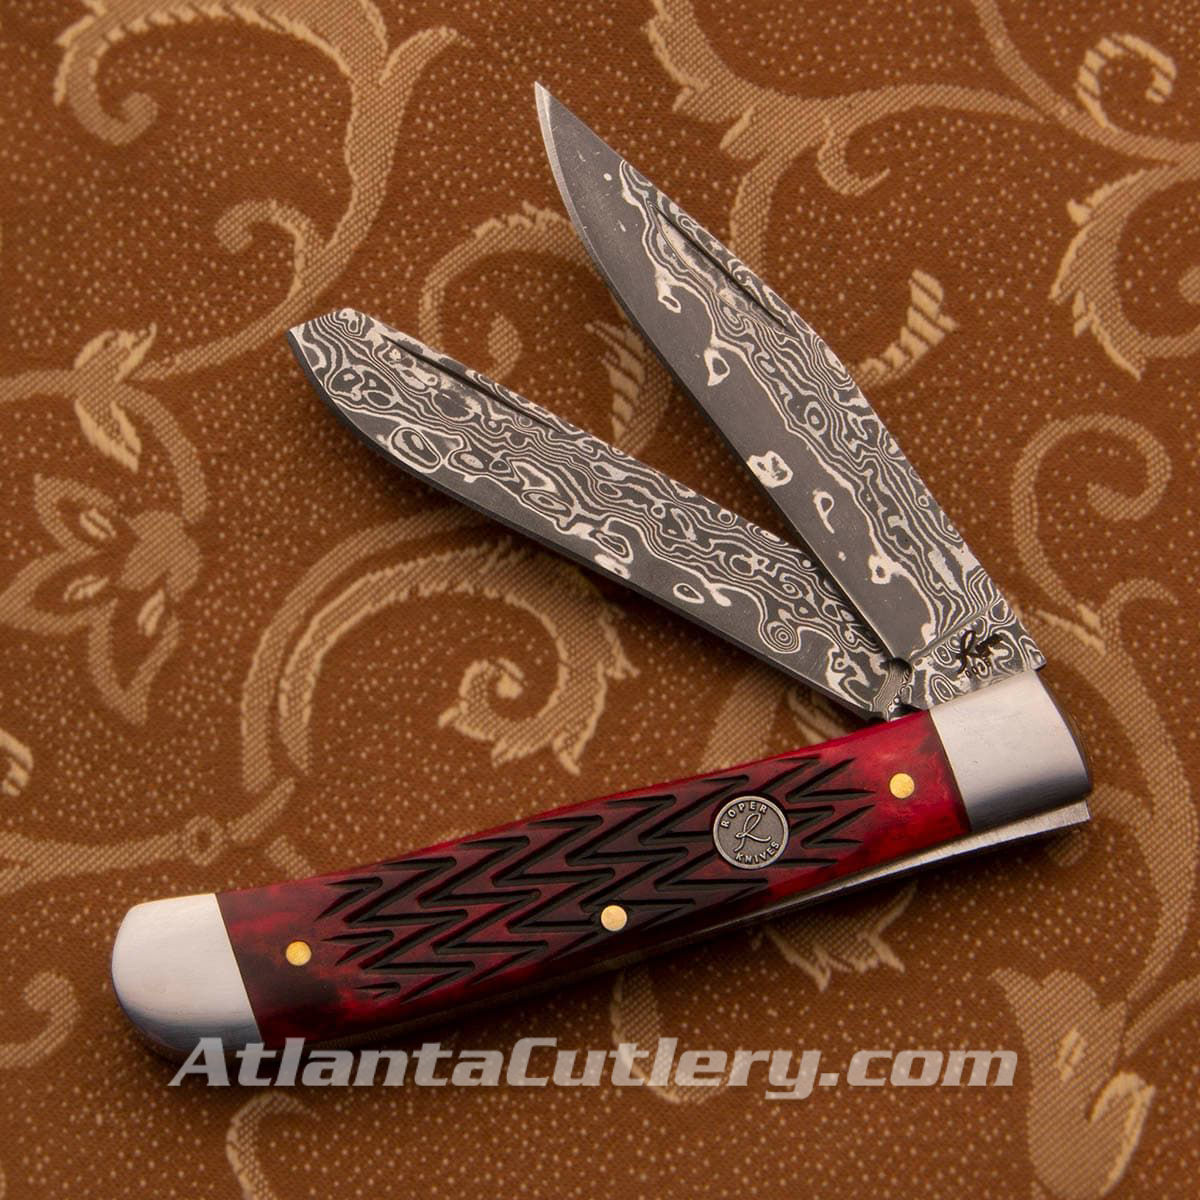 2 blades of this Roper pocket knife are 57 layer Damascus, red jigged bone handles adorned with a zigzag texture